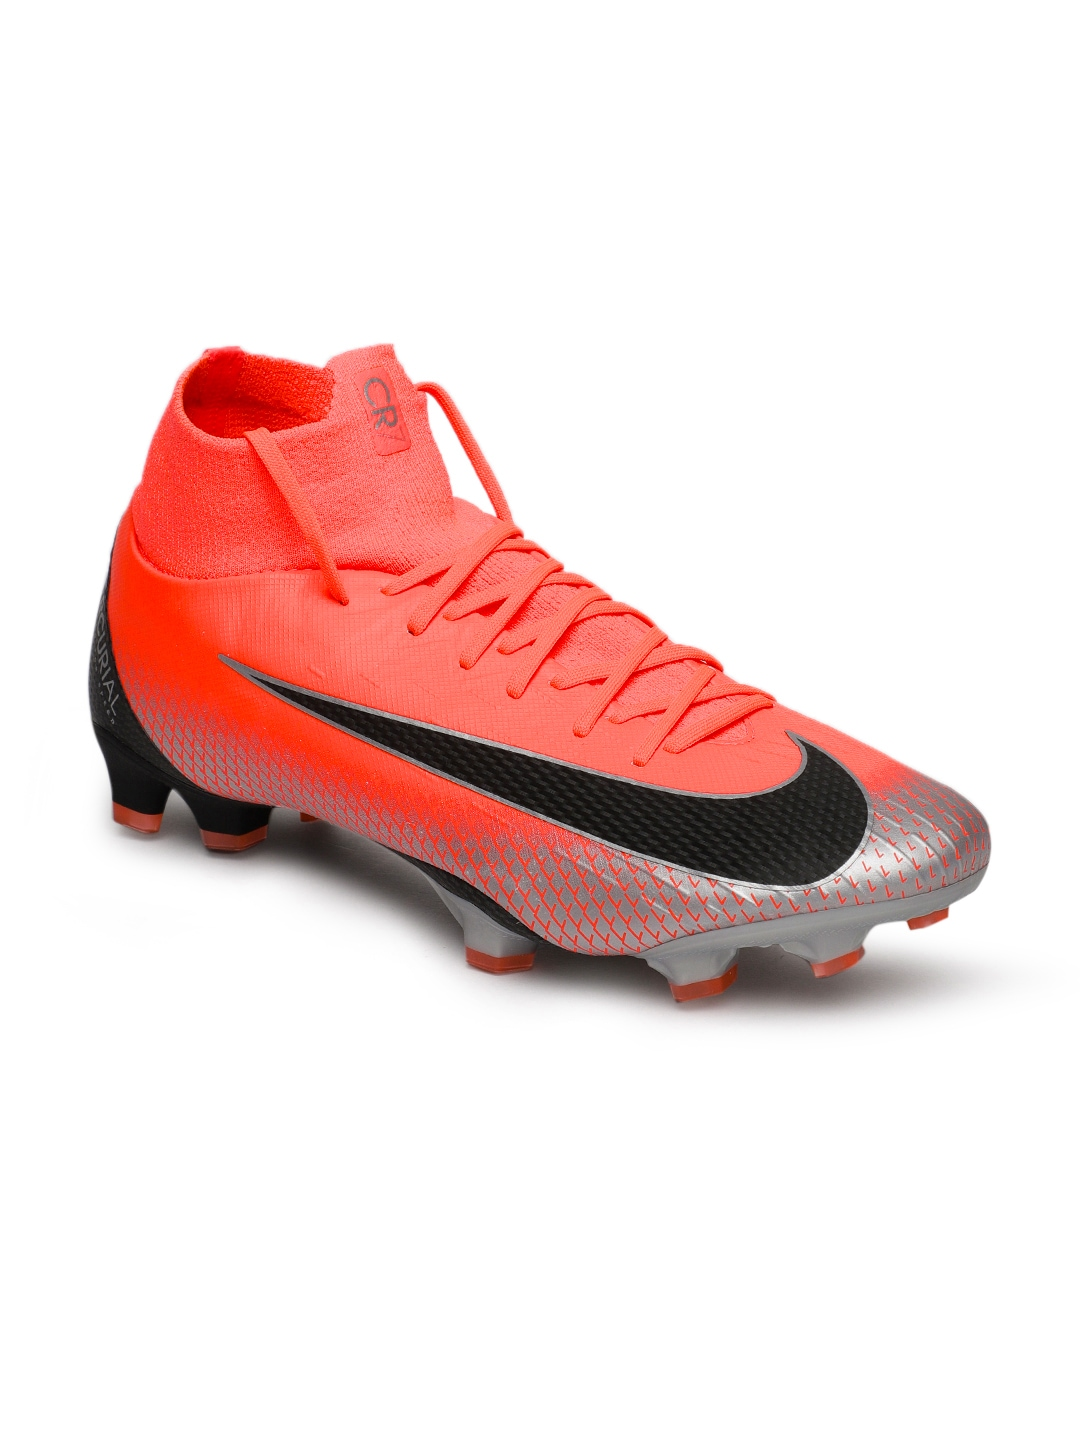 52516d2d85d Nike Football Shoes - Buy Nike Football Shoes Online At Myntra